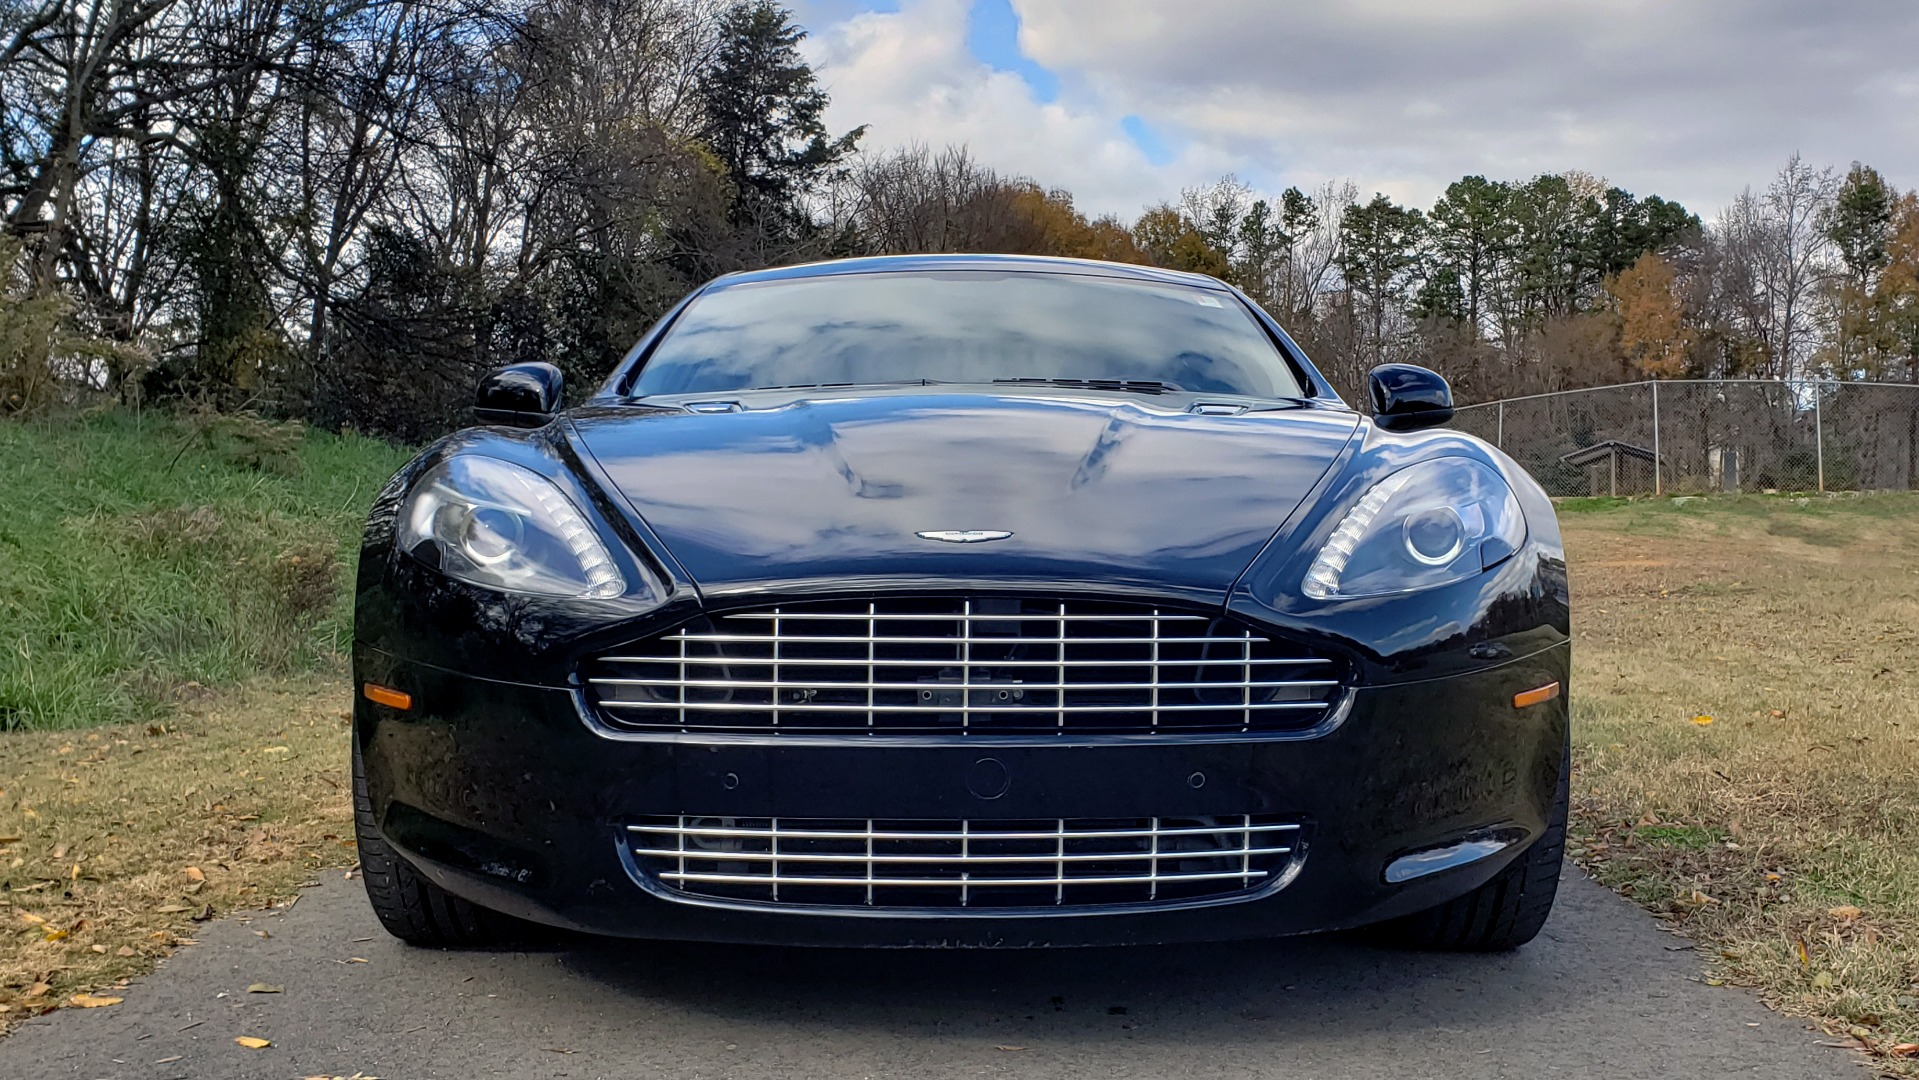 Used 2012 Aston Martin RAPIDE LUXURY 6.0L V12 / NAV / B&O SND / ENTERTAINMENT / REARVIEW for sale Sold at Formula Imports in Charlotte NC 28227 10